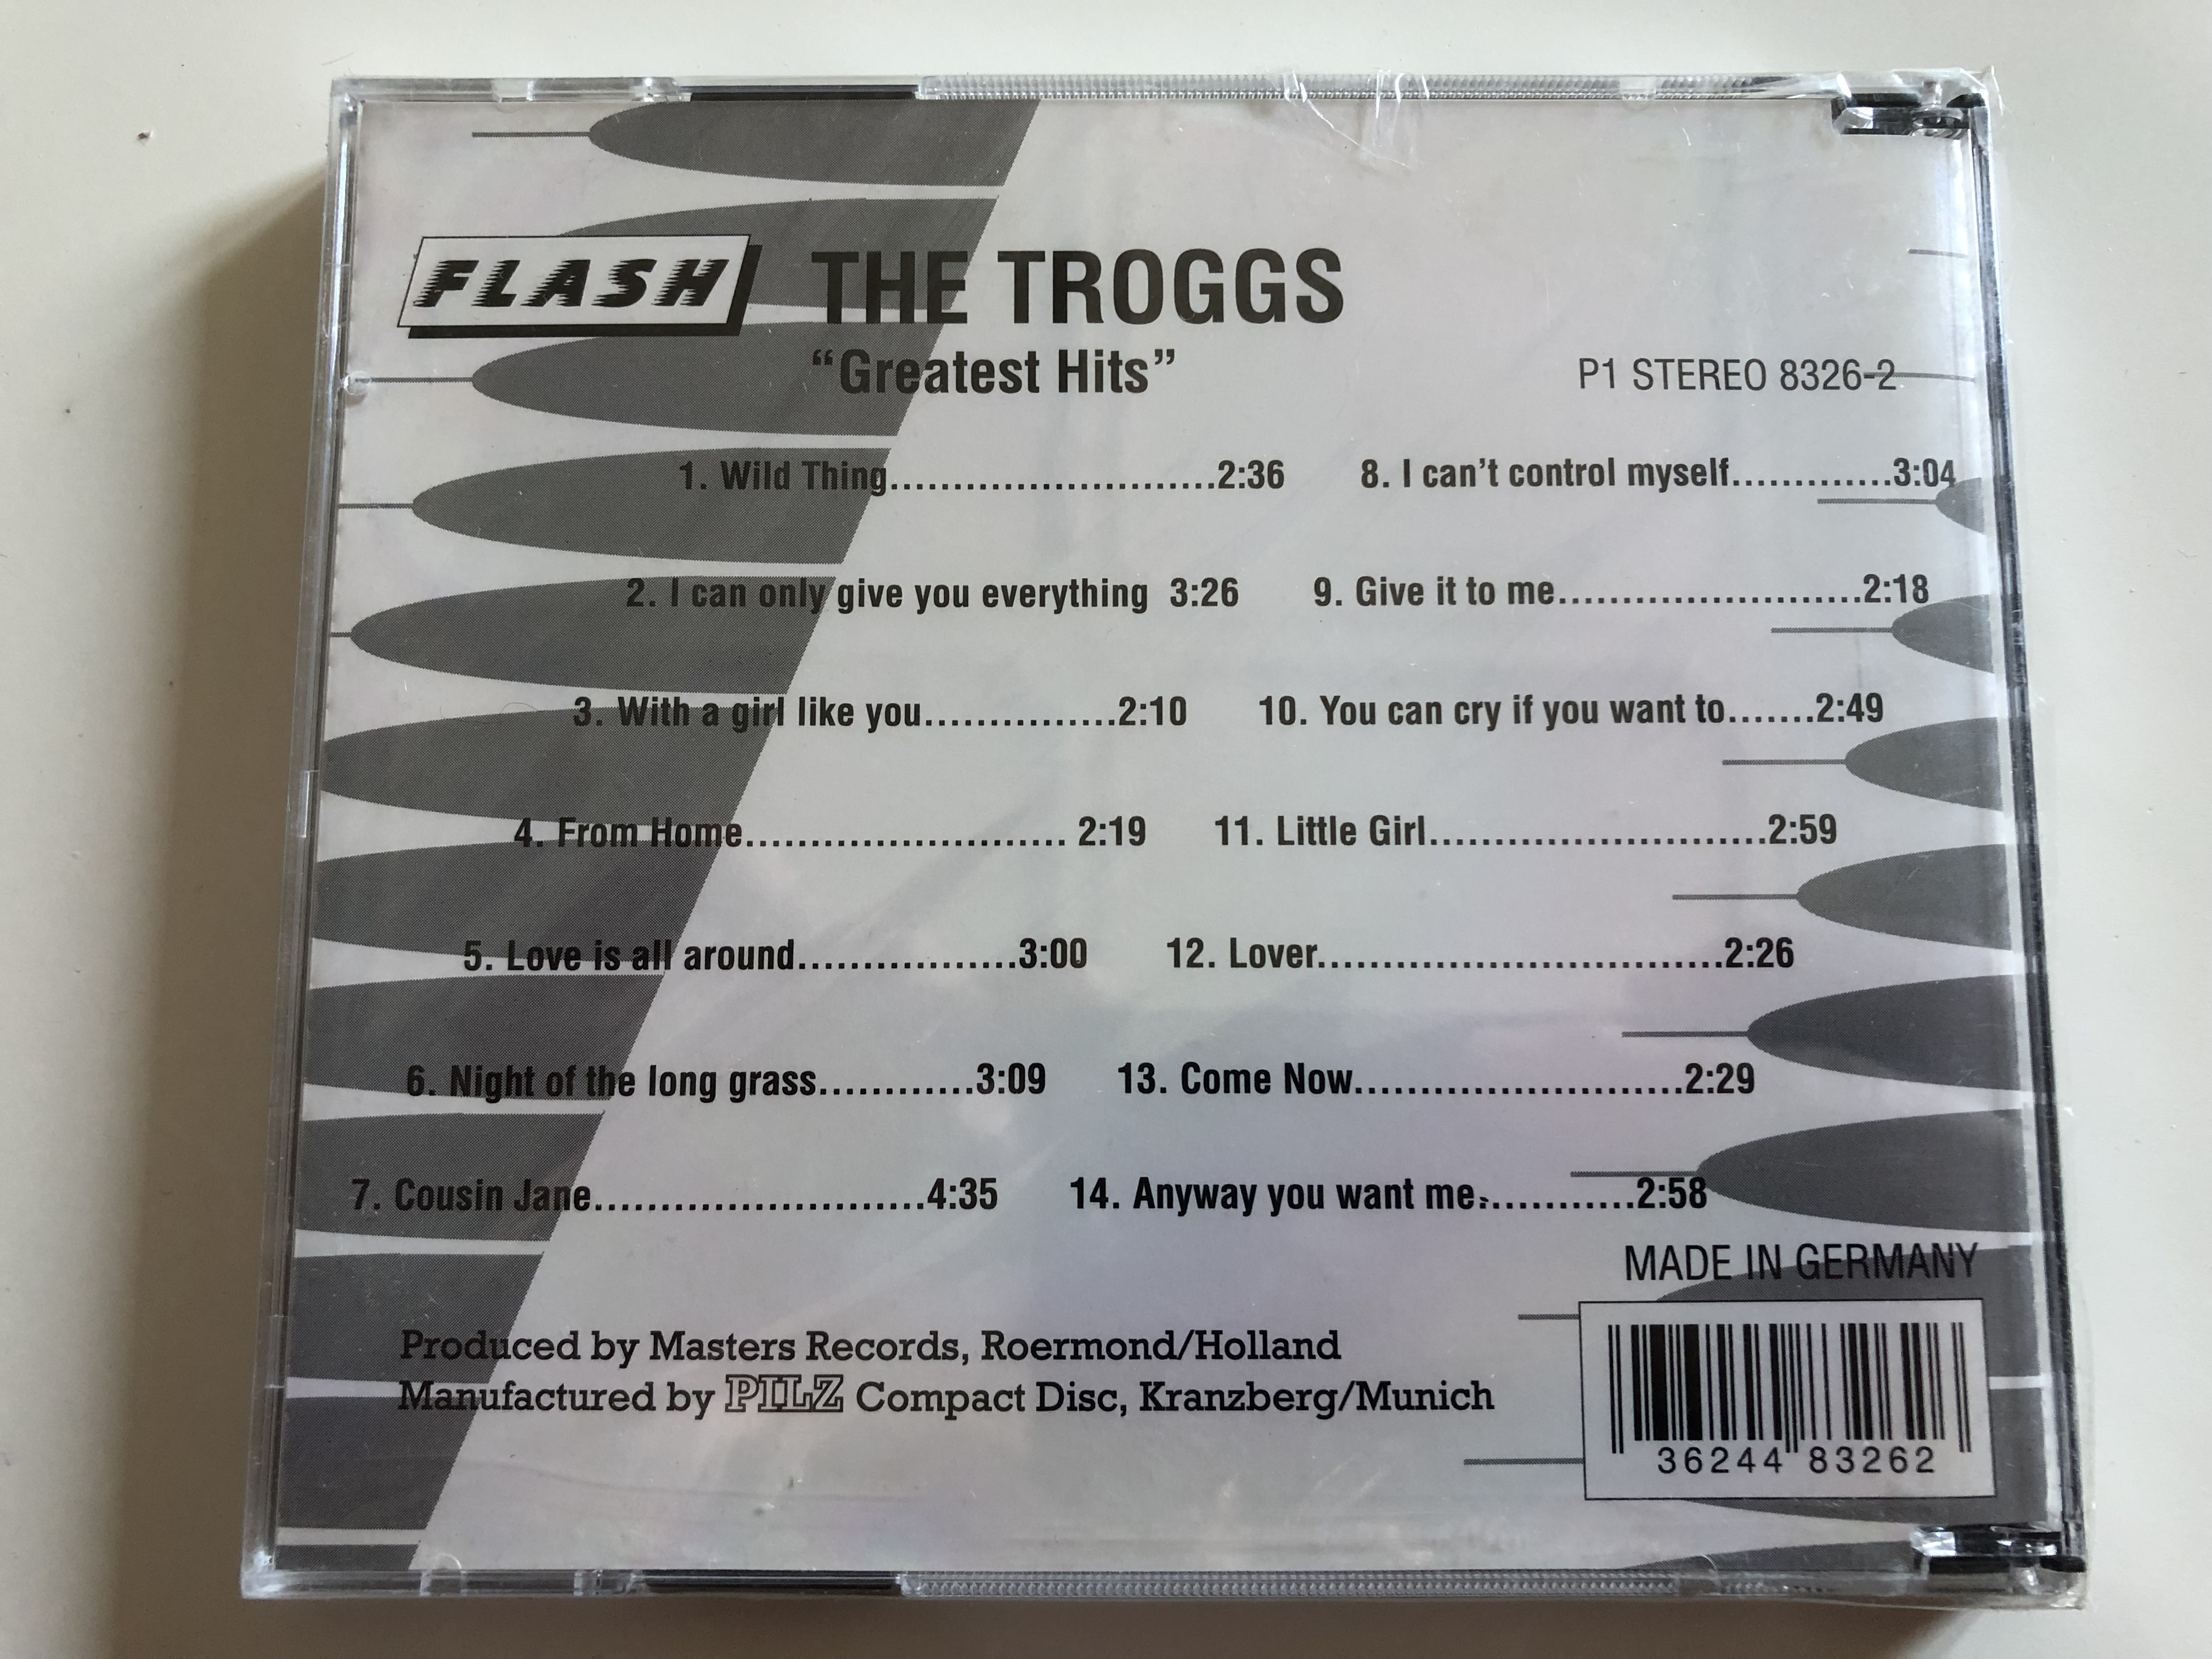 the-troggs-greatest-hits-wild-thing-love-is-all-around-cousin-jane-give-it-to-me-anyway-you-want-me-audio-cd-flash-8326-2-2-.jpg